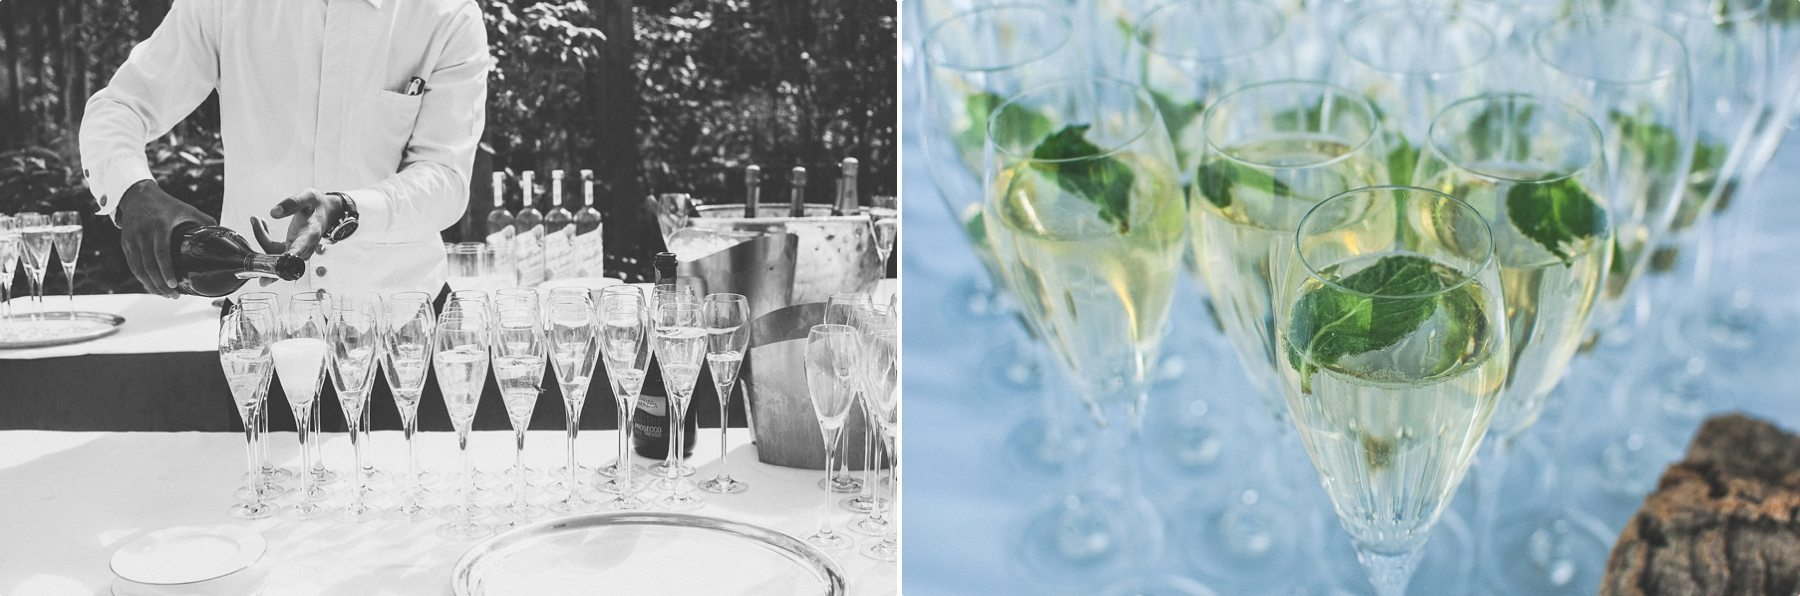 Champagne flutes being filled and glistening in the sun at Coworth Park Barn summer wedding